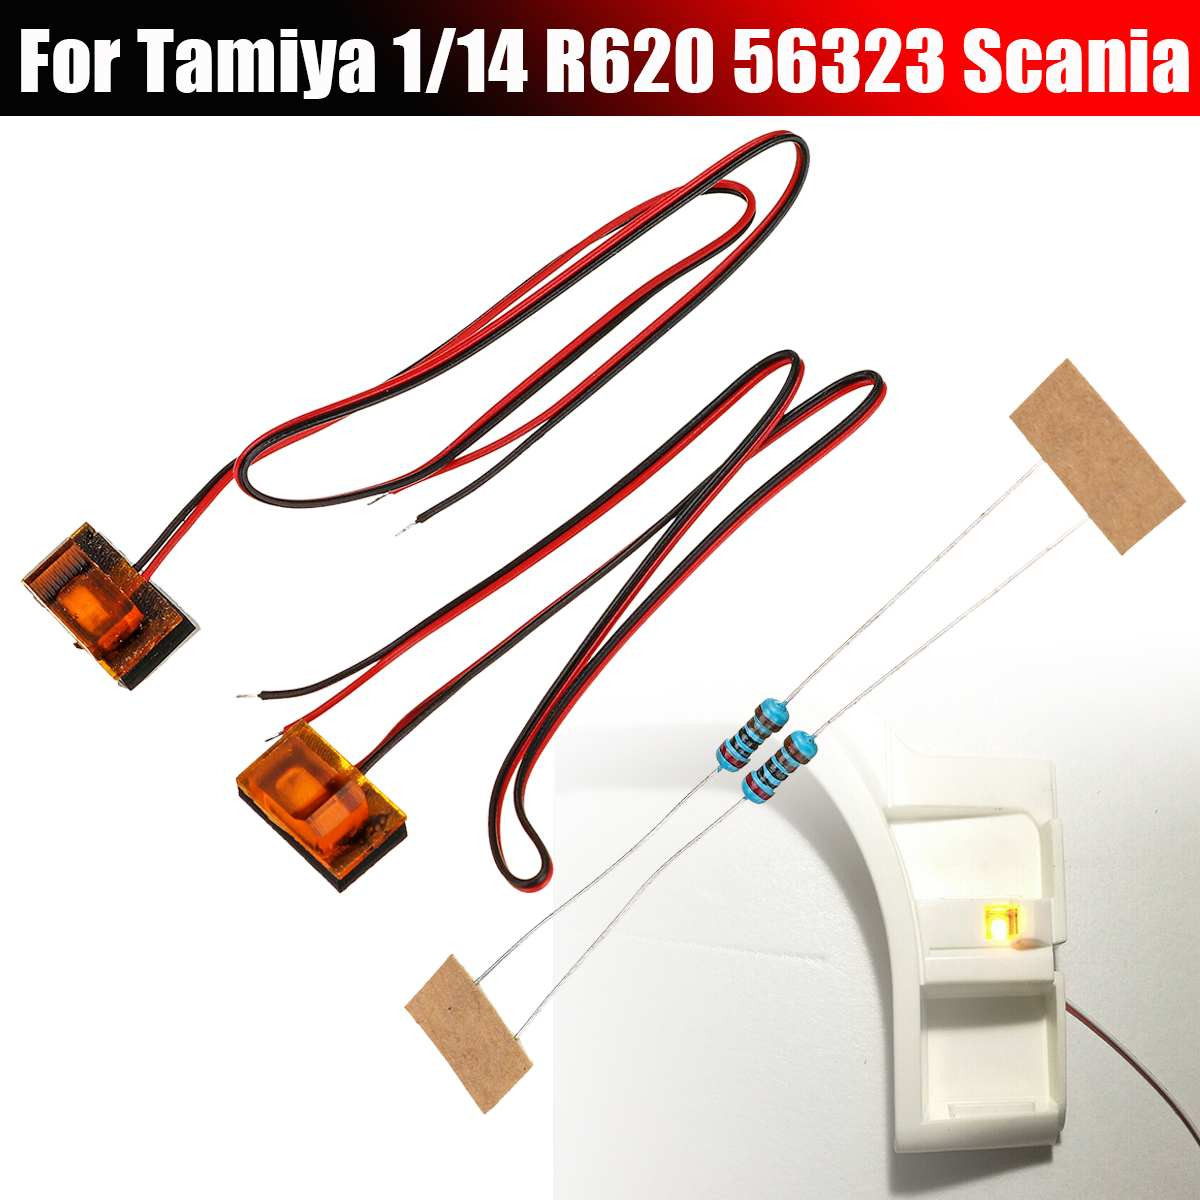 NEW 2PCS Replacement <font><b>RC</b></font> <font><b>Truck</b></font> Side Pedal Turn Signal Light For <font><b>Tamiya</b></font> <font><b>1/14</b></font> Scania R620 56323 <font><b>RC</b></font> <font><b>Truck</b></font> Parts <font><b>RC</b></font> Car Accessories image